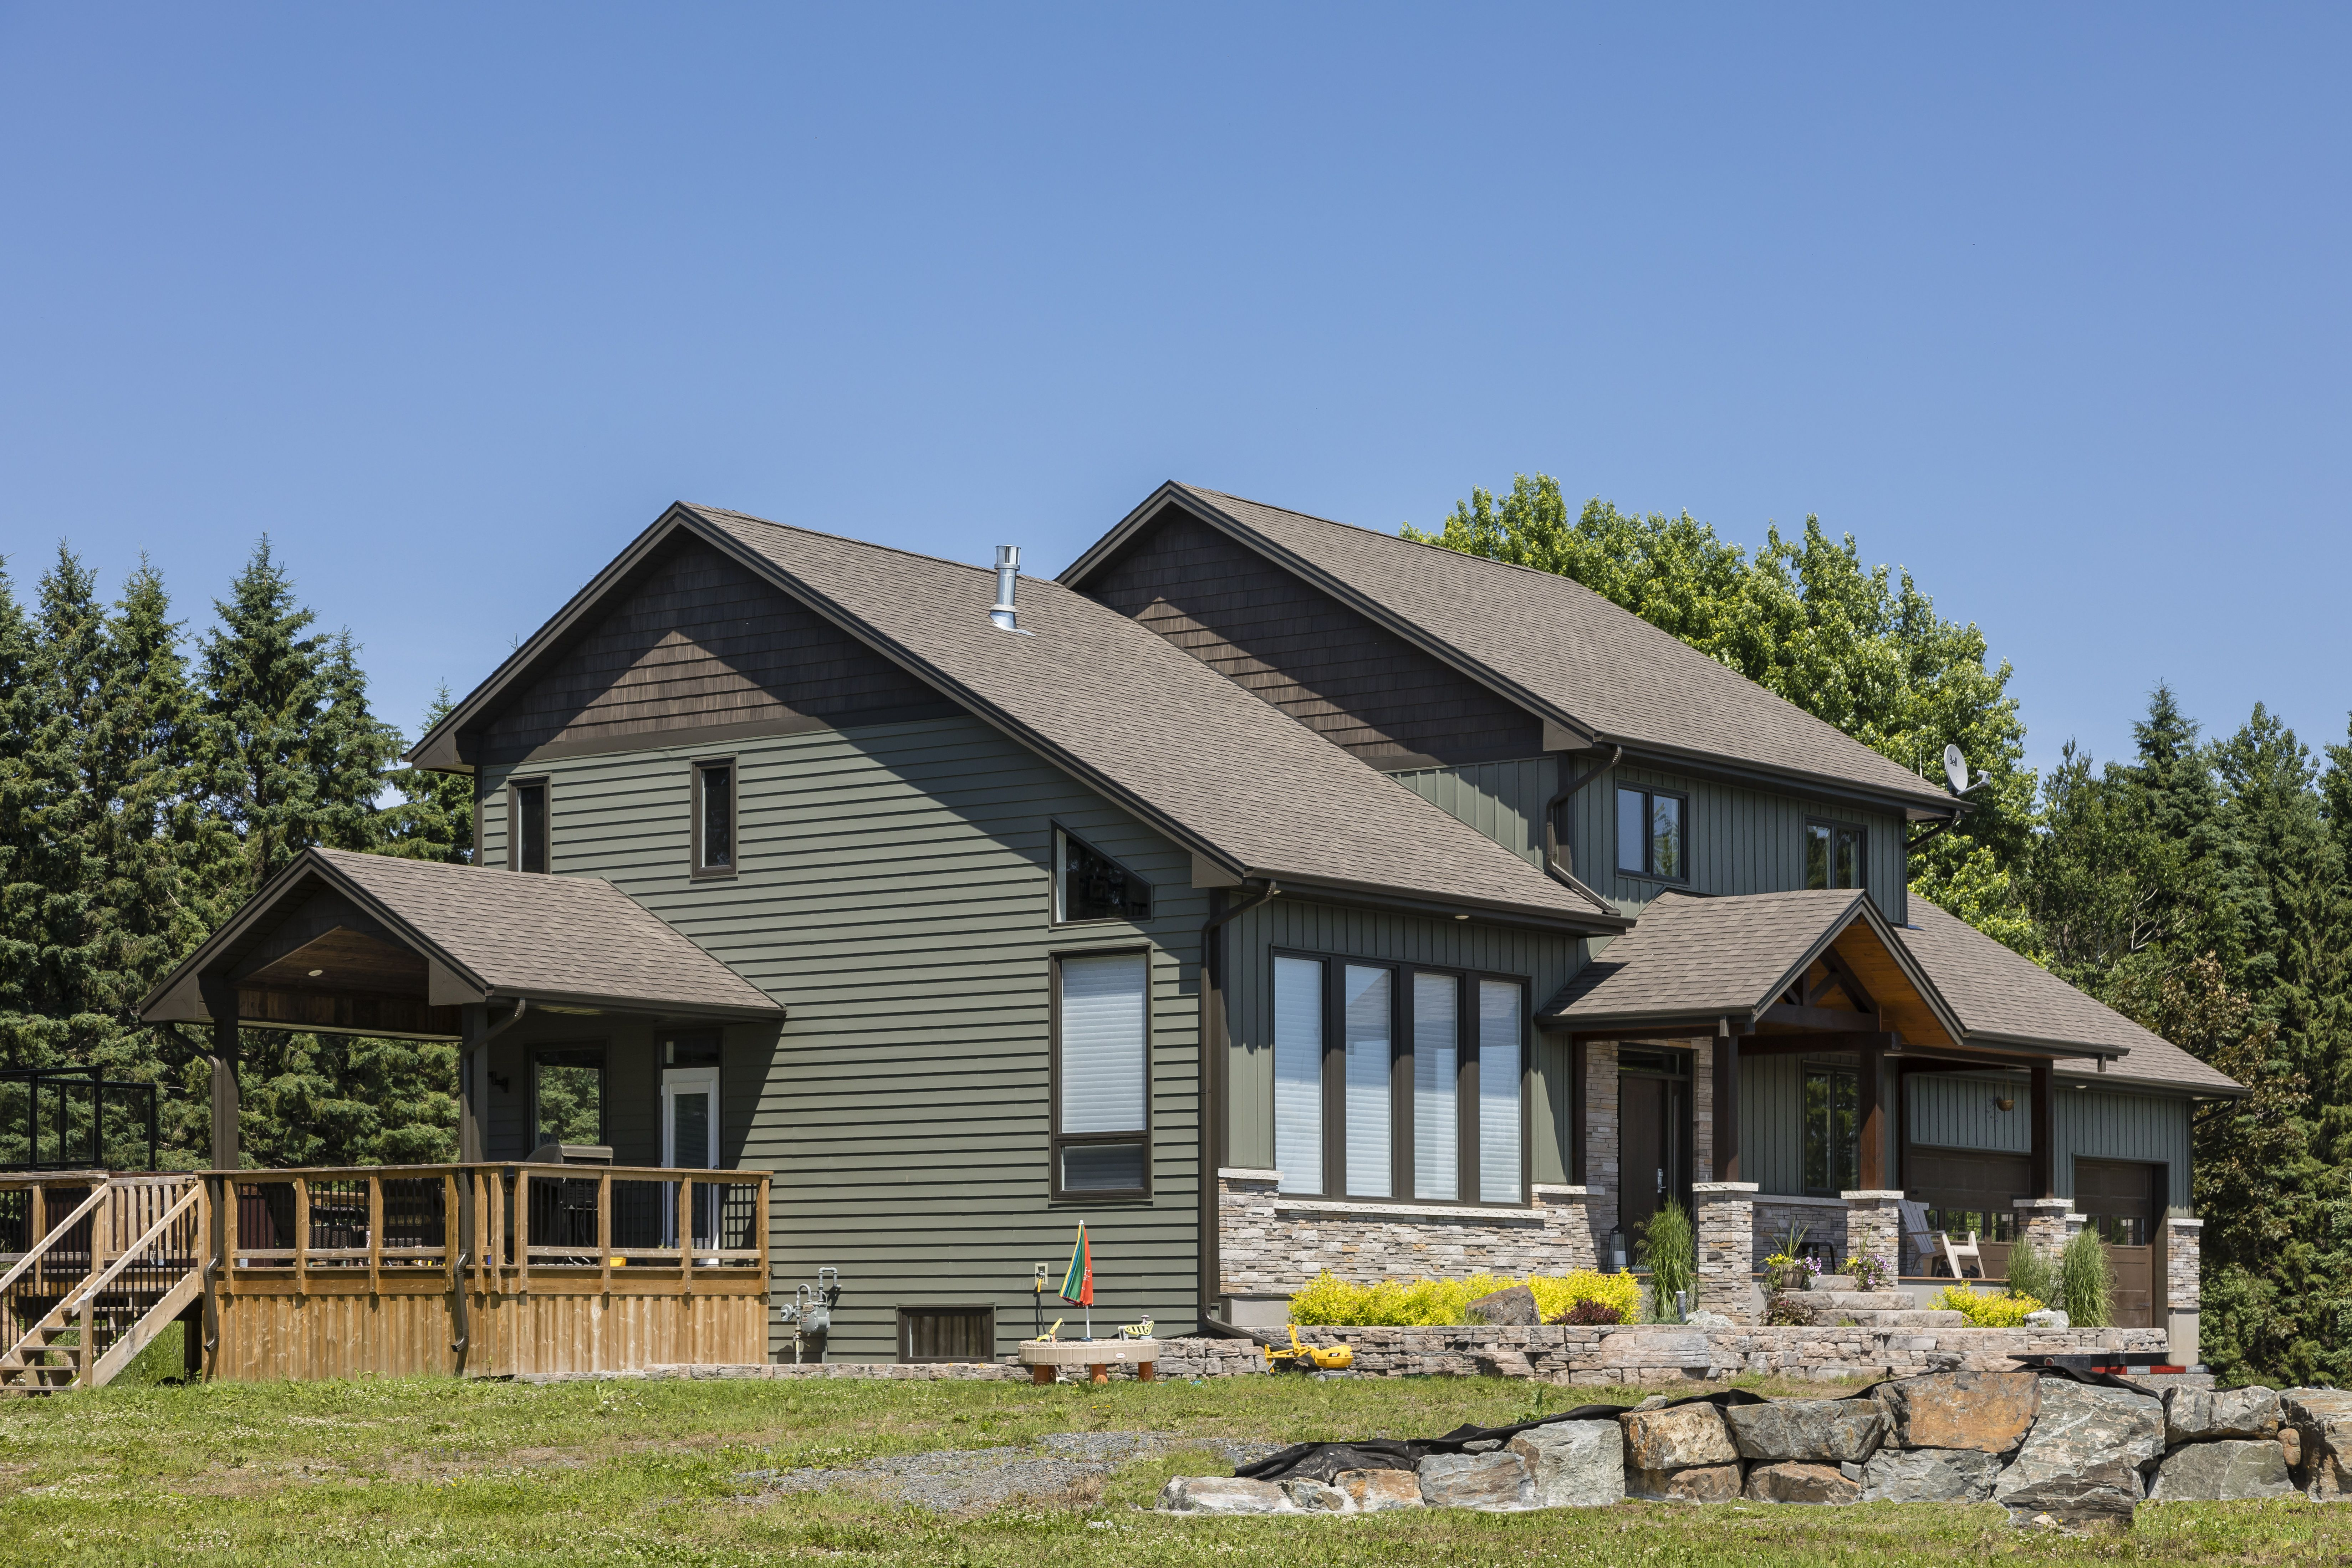 Royal Haven D7 And Board Batten Siding In Shamrock House Exterior Insulated Siding Exterior Siding